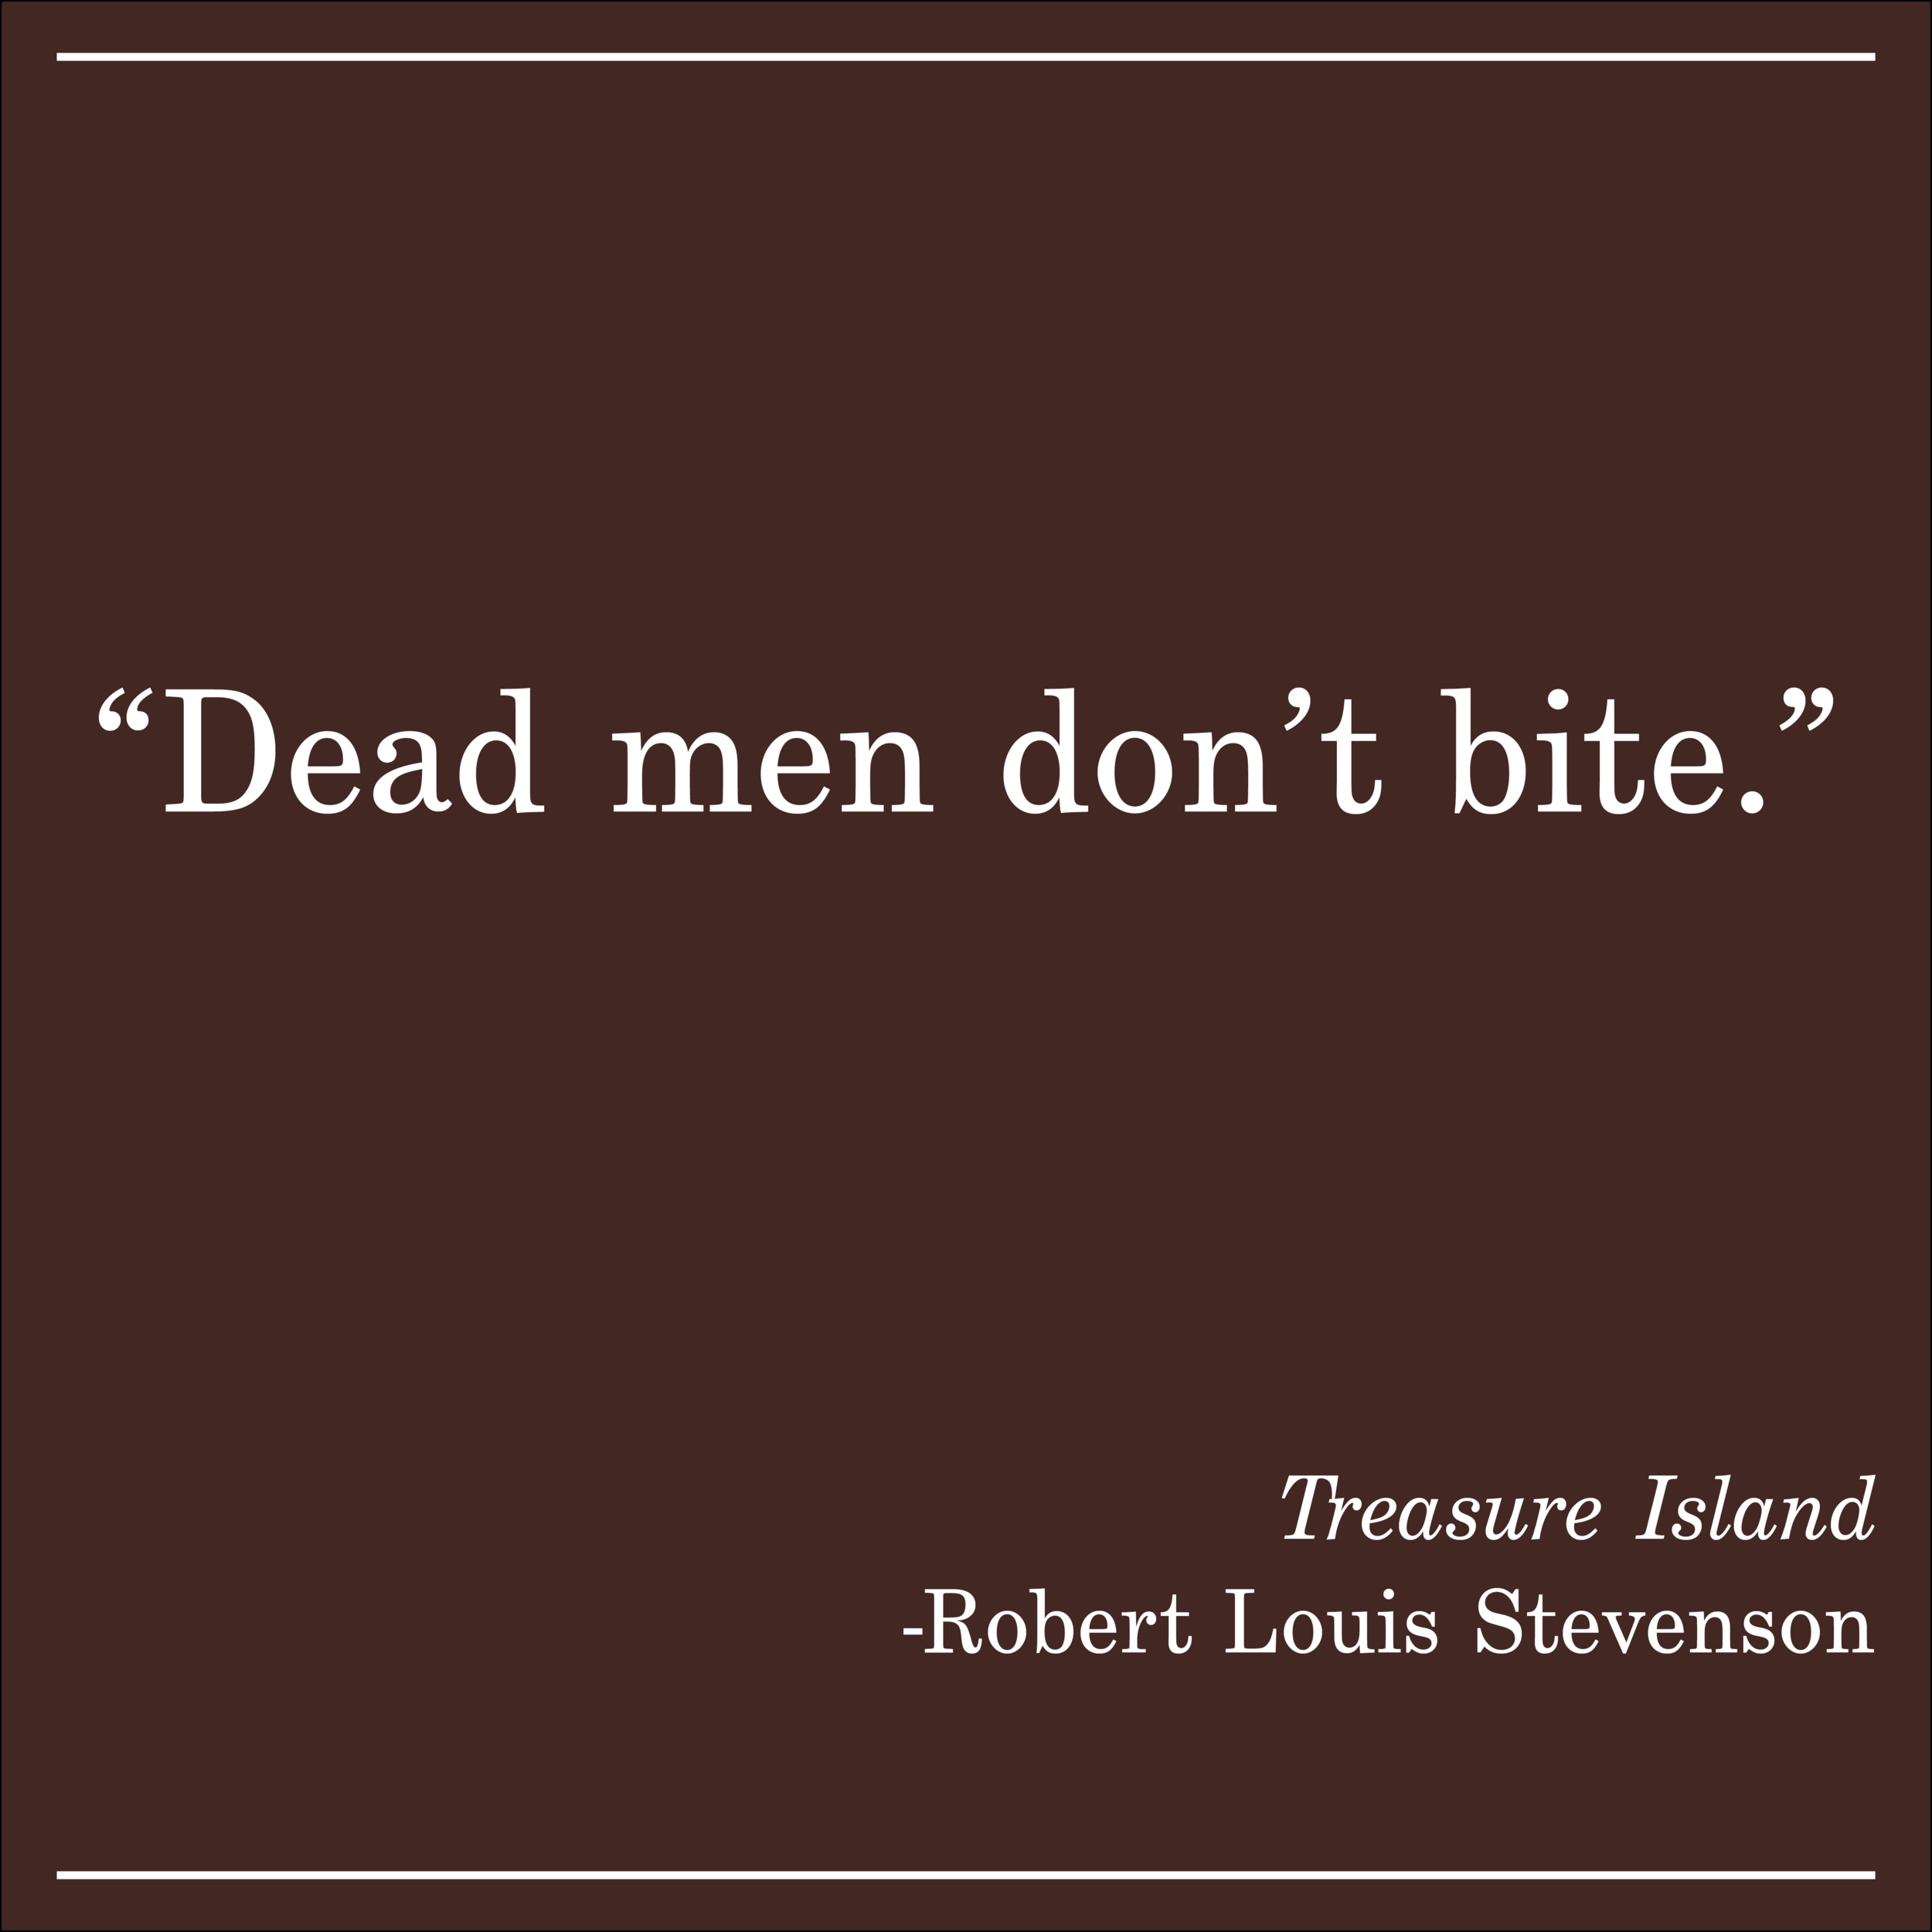 Daily Quote Treasure Island by Robert Louis Stevenson